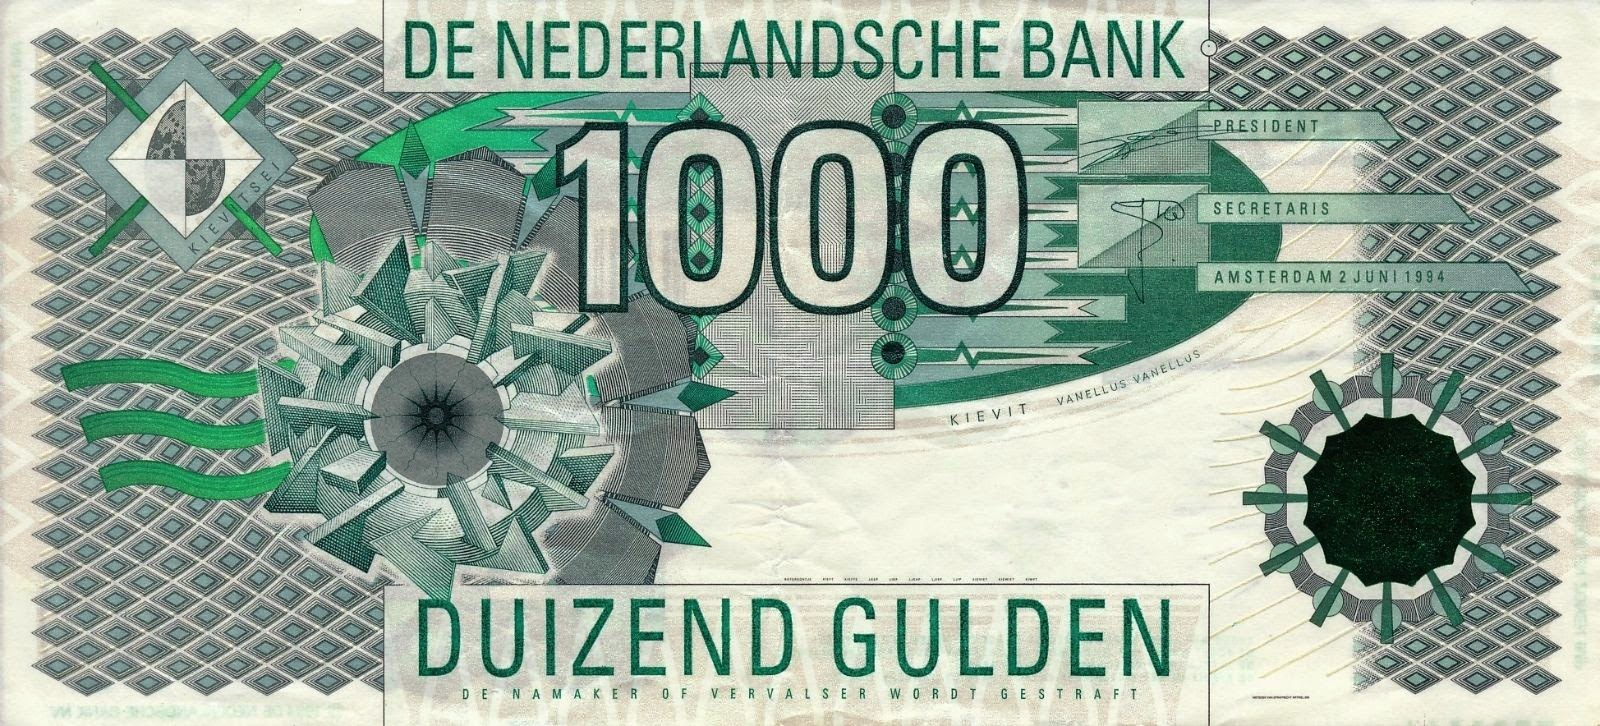 Banknotes of the Dutch guilder Netherlands 1000 Gulden Banknote 1994